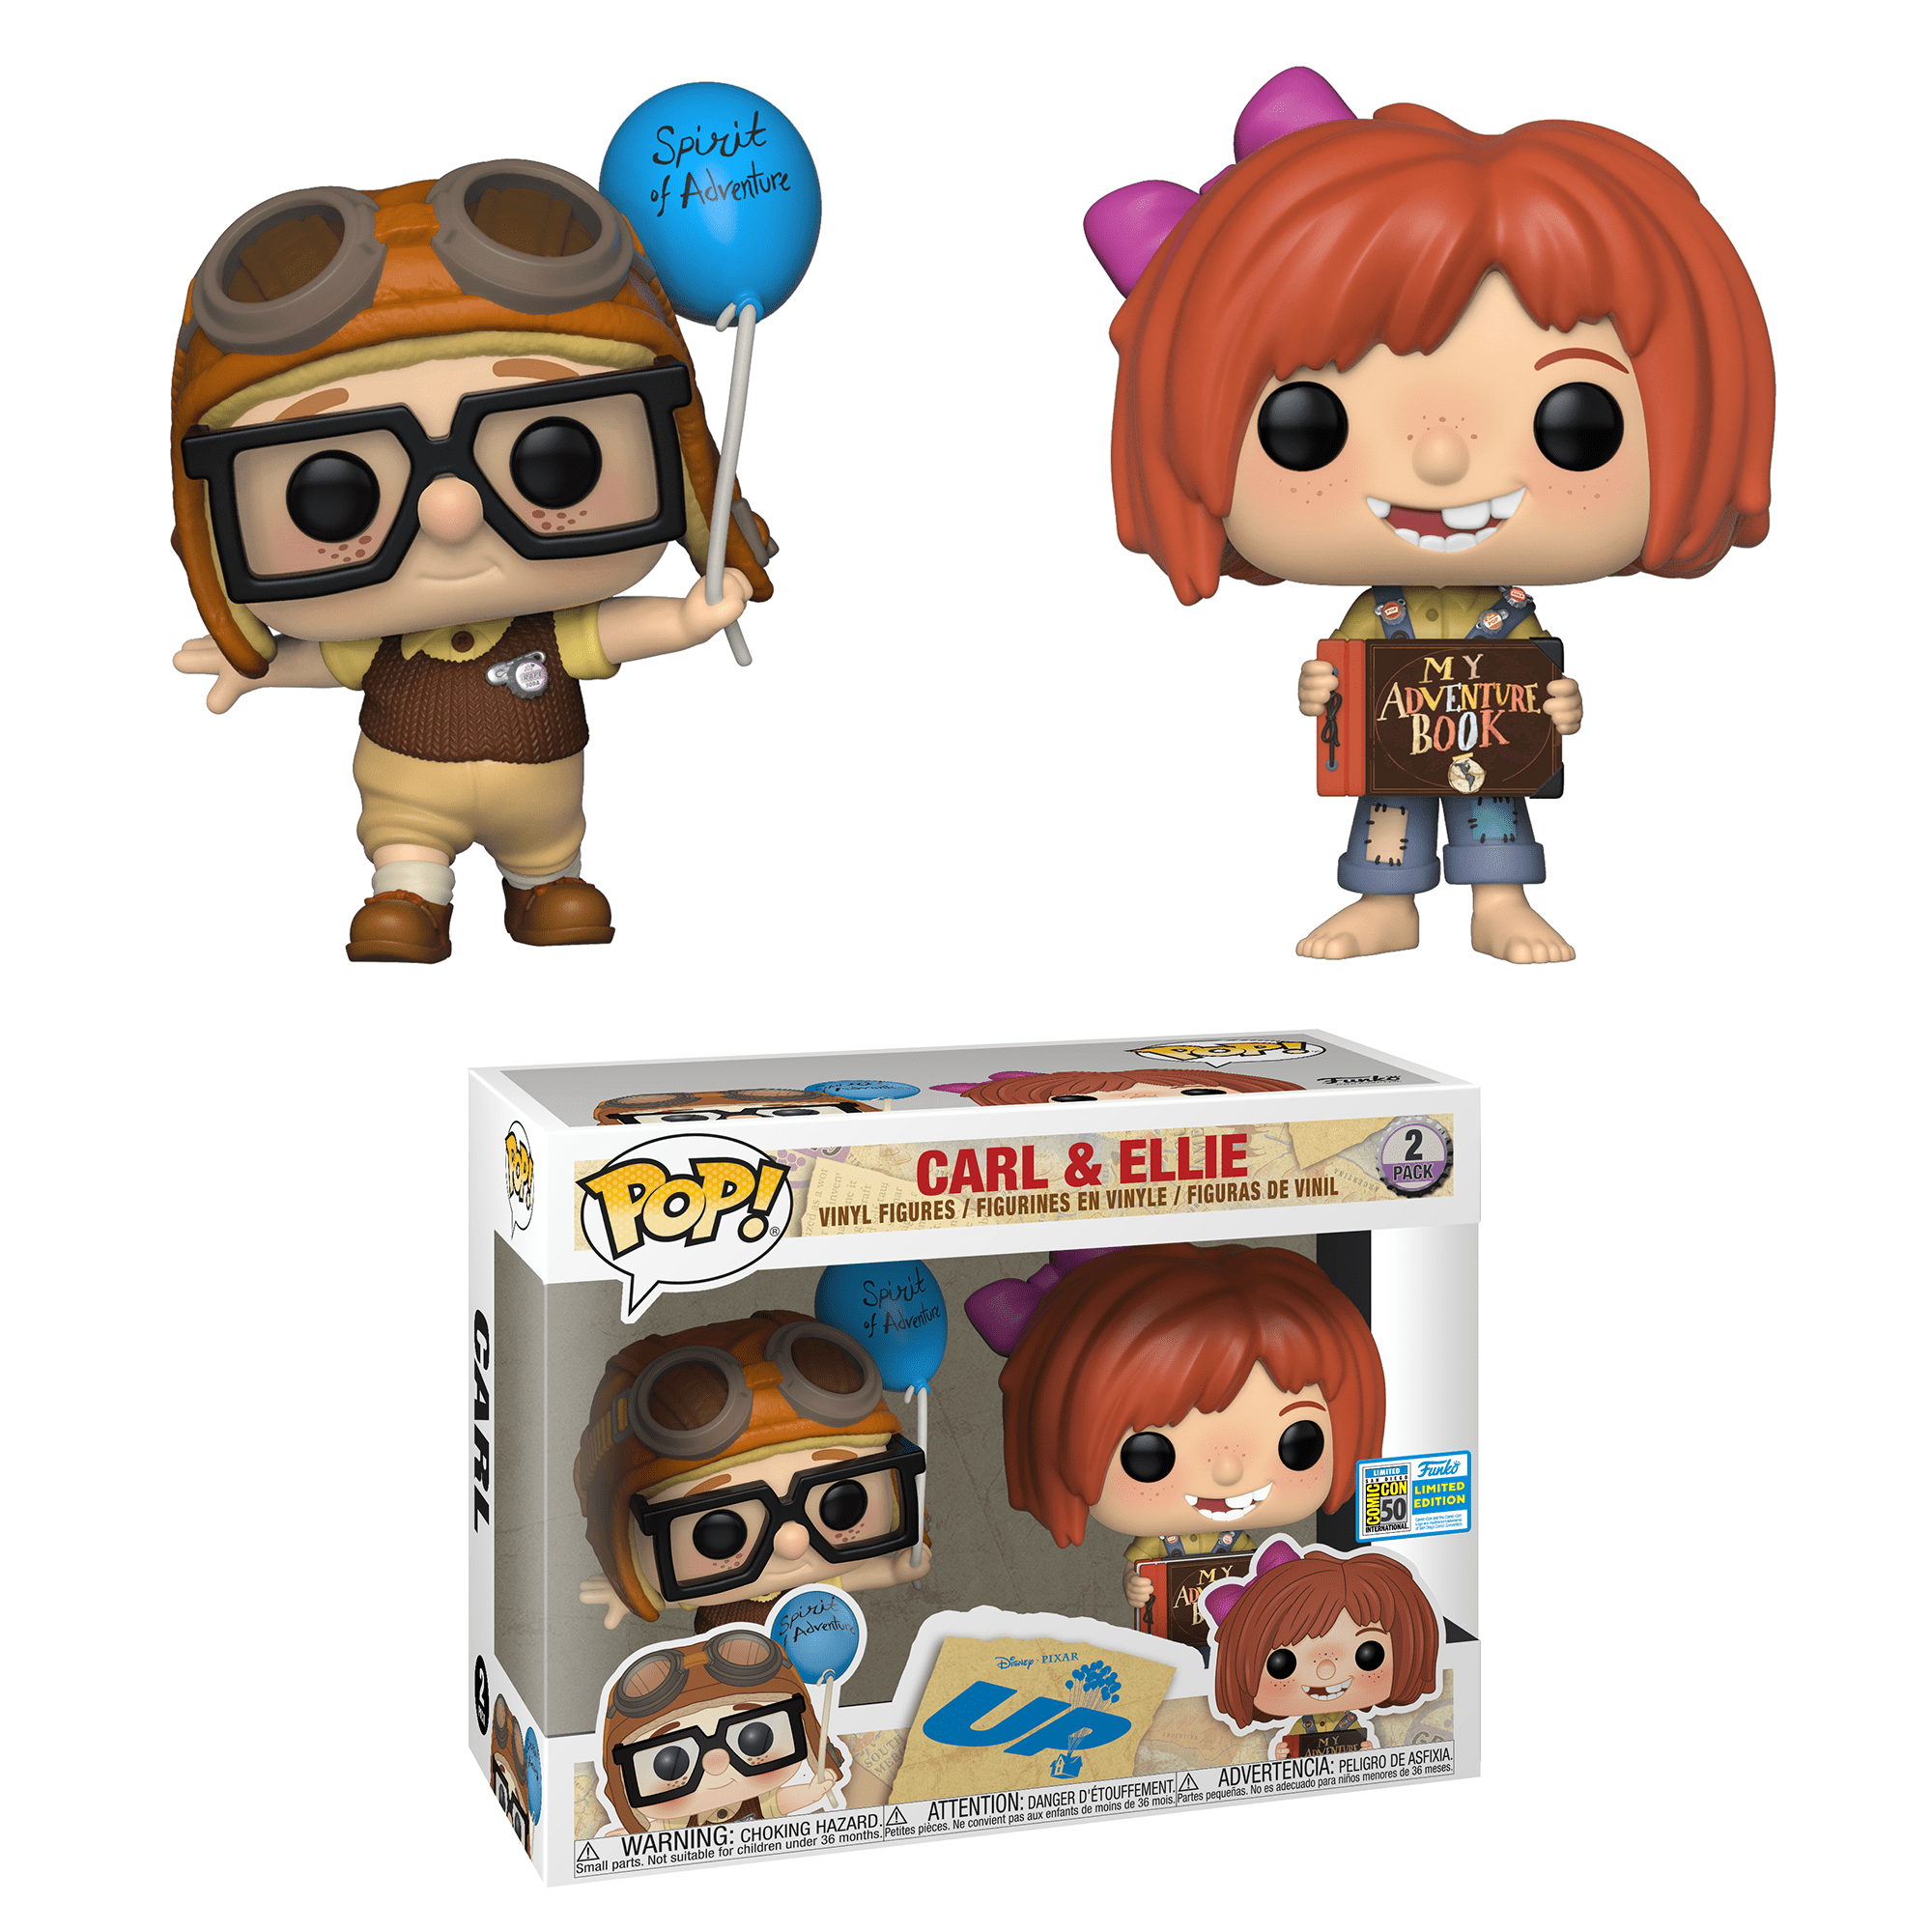 Funko Pop! Carl & Ellie (Up)